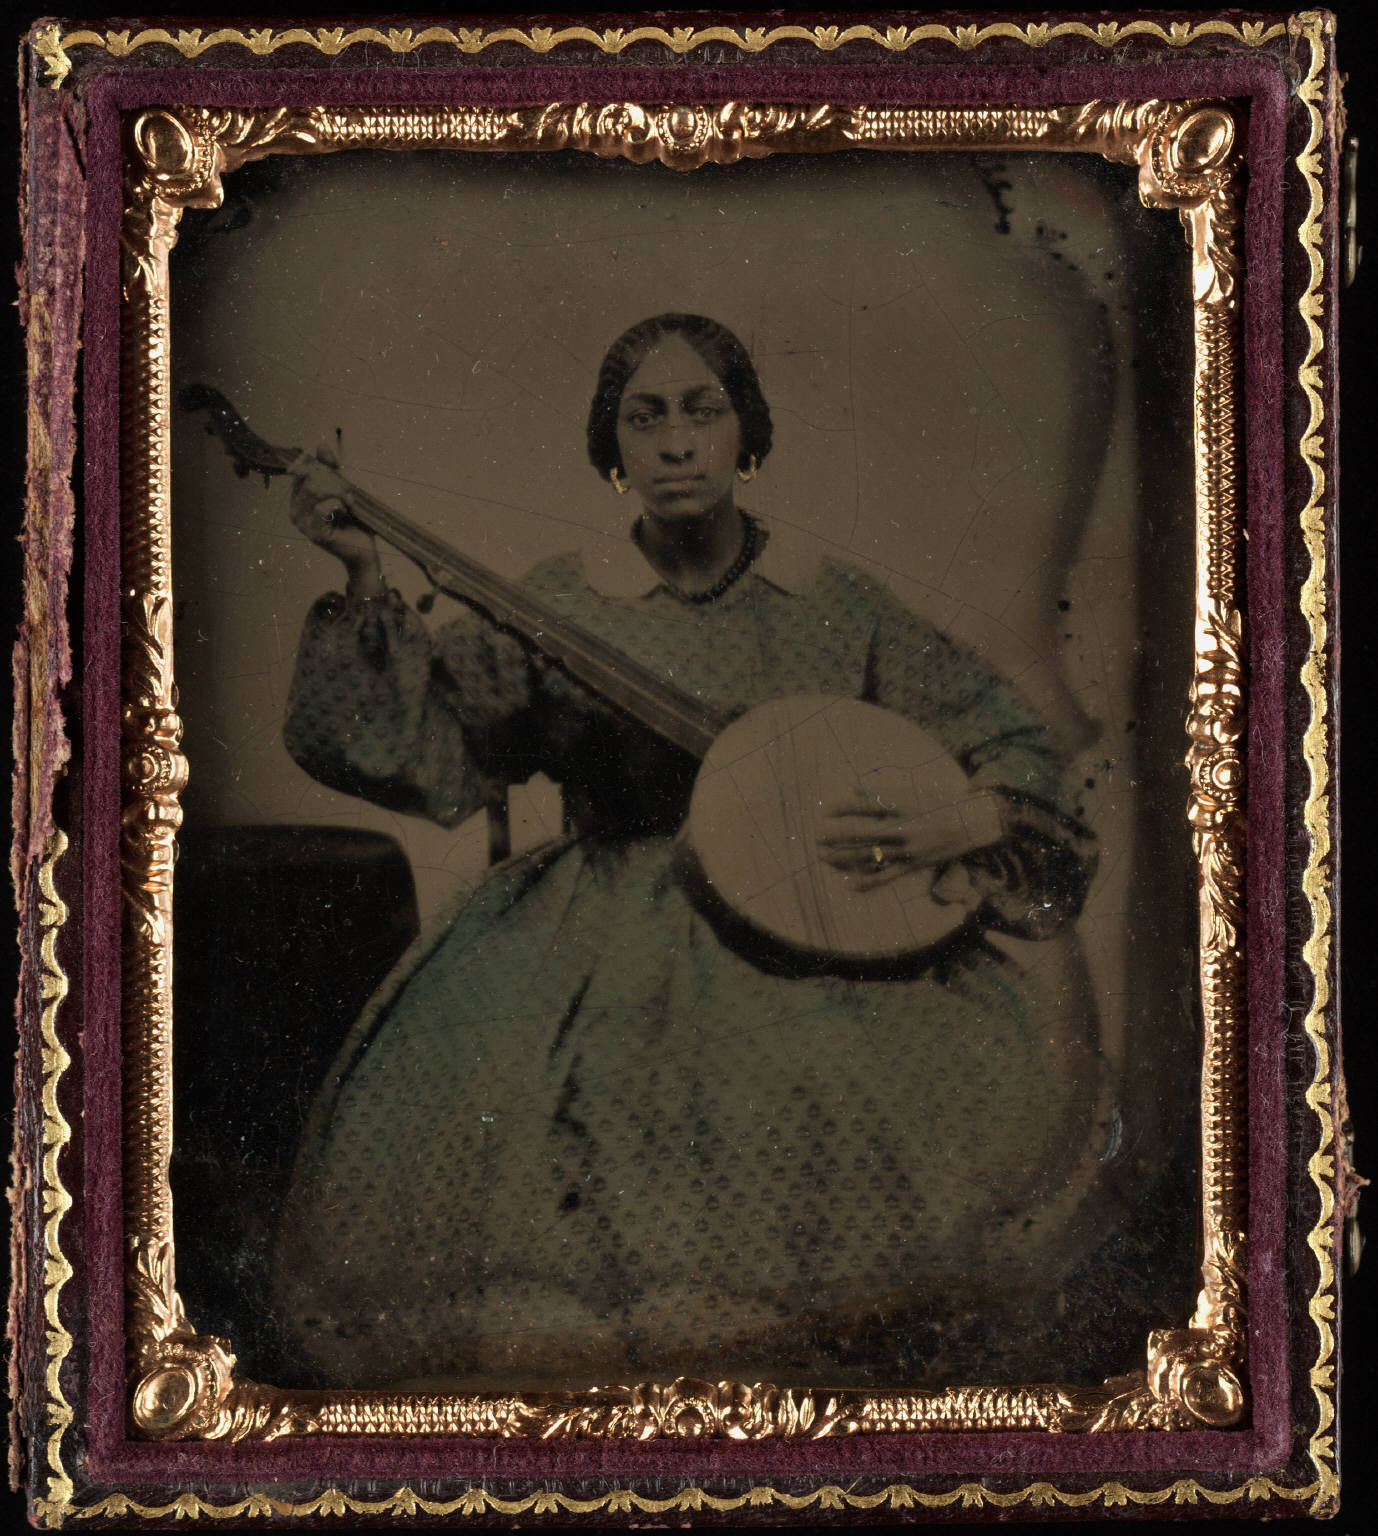 Caption: Portrait of a young black woman, seated, holding nine string banjo , Credit: Yale Collection of American Literature, Beinecke Rare Book and Manuscript Library